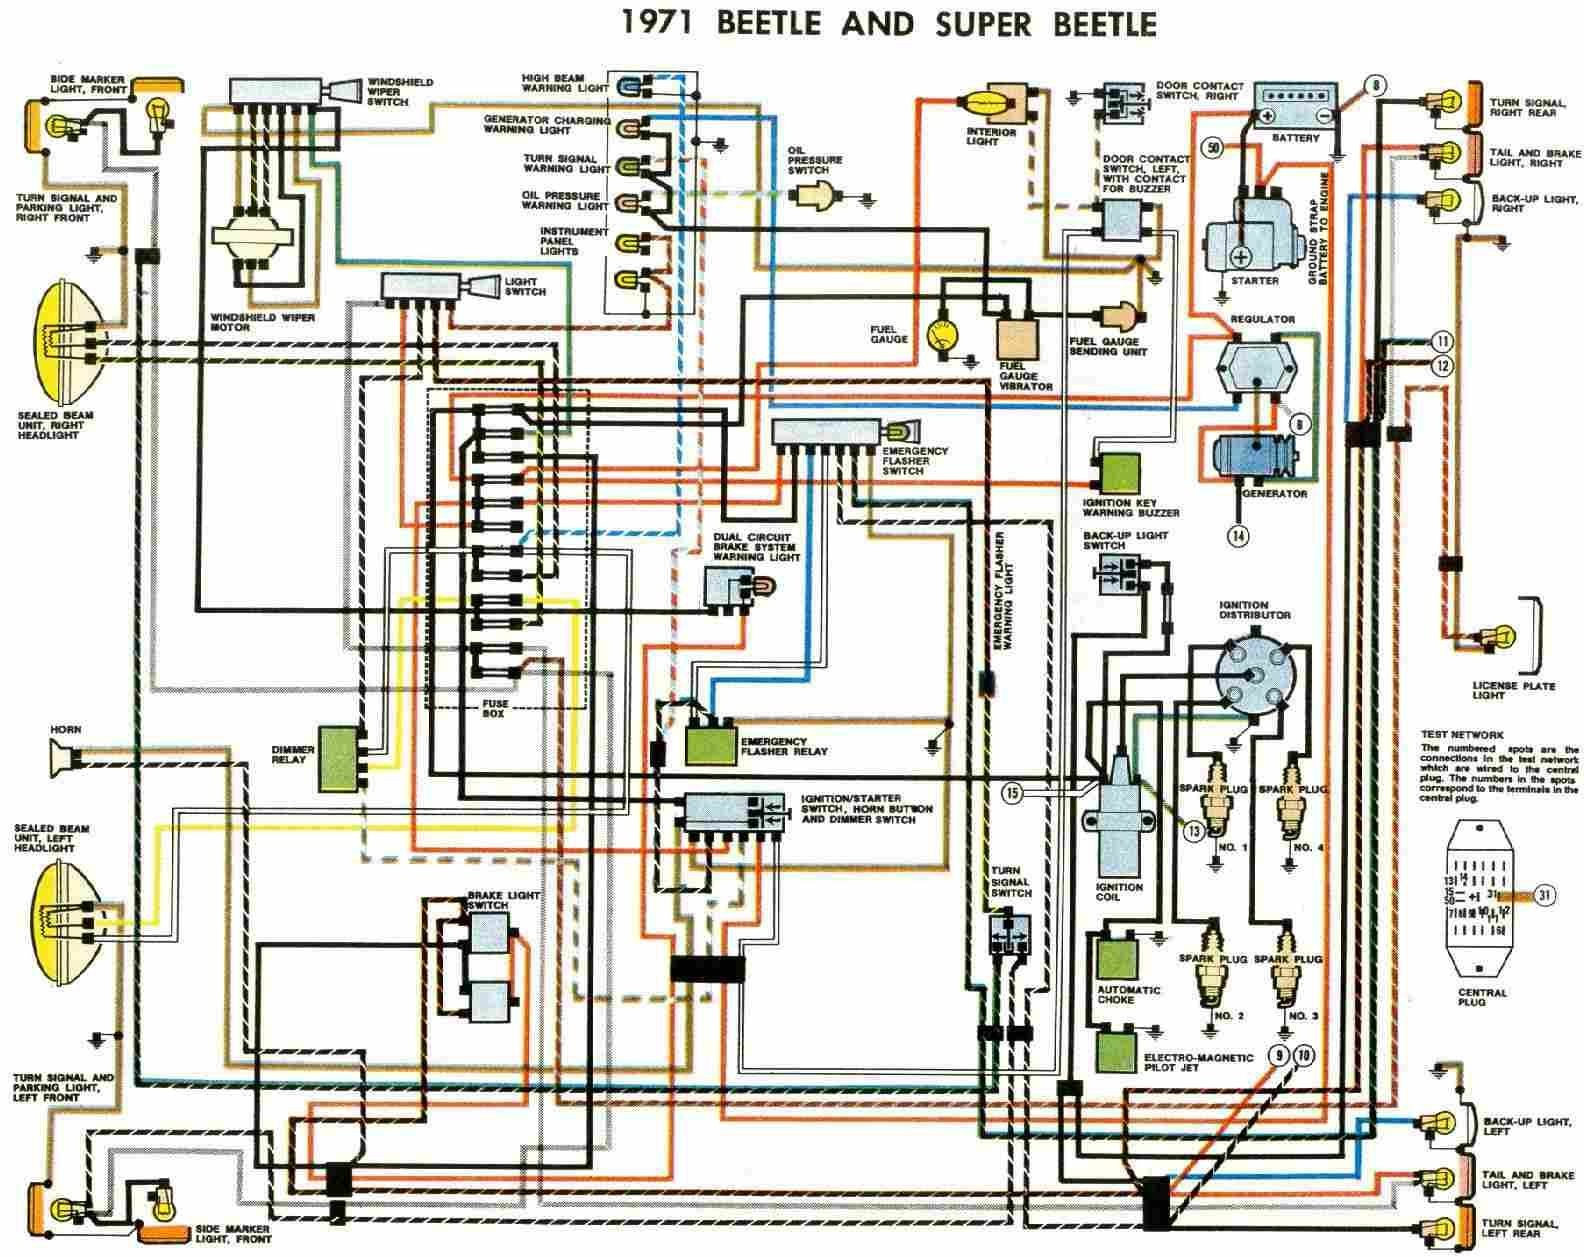 hight resolution of 1998 vw beetle wiring harness wiring diagram mega 1998 vw beetle wiring harness